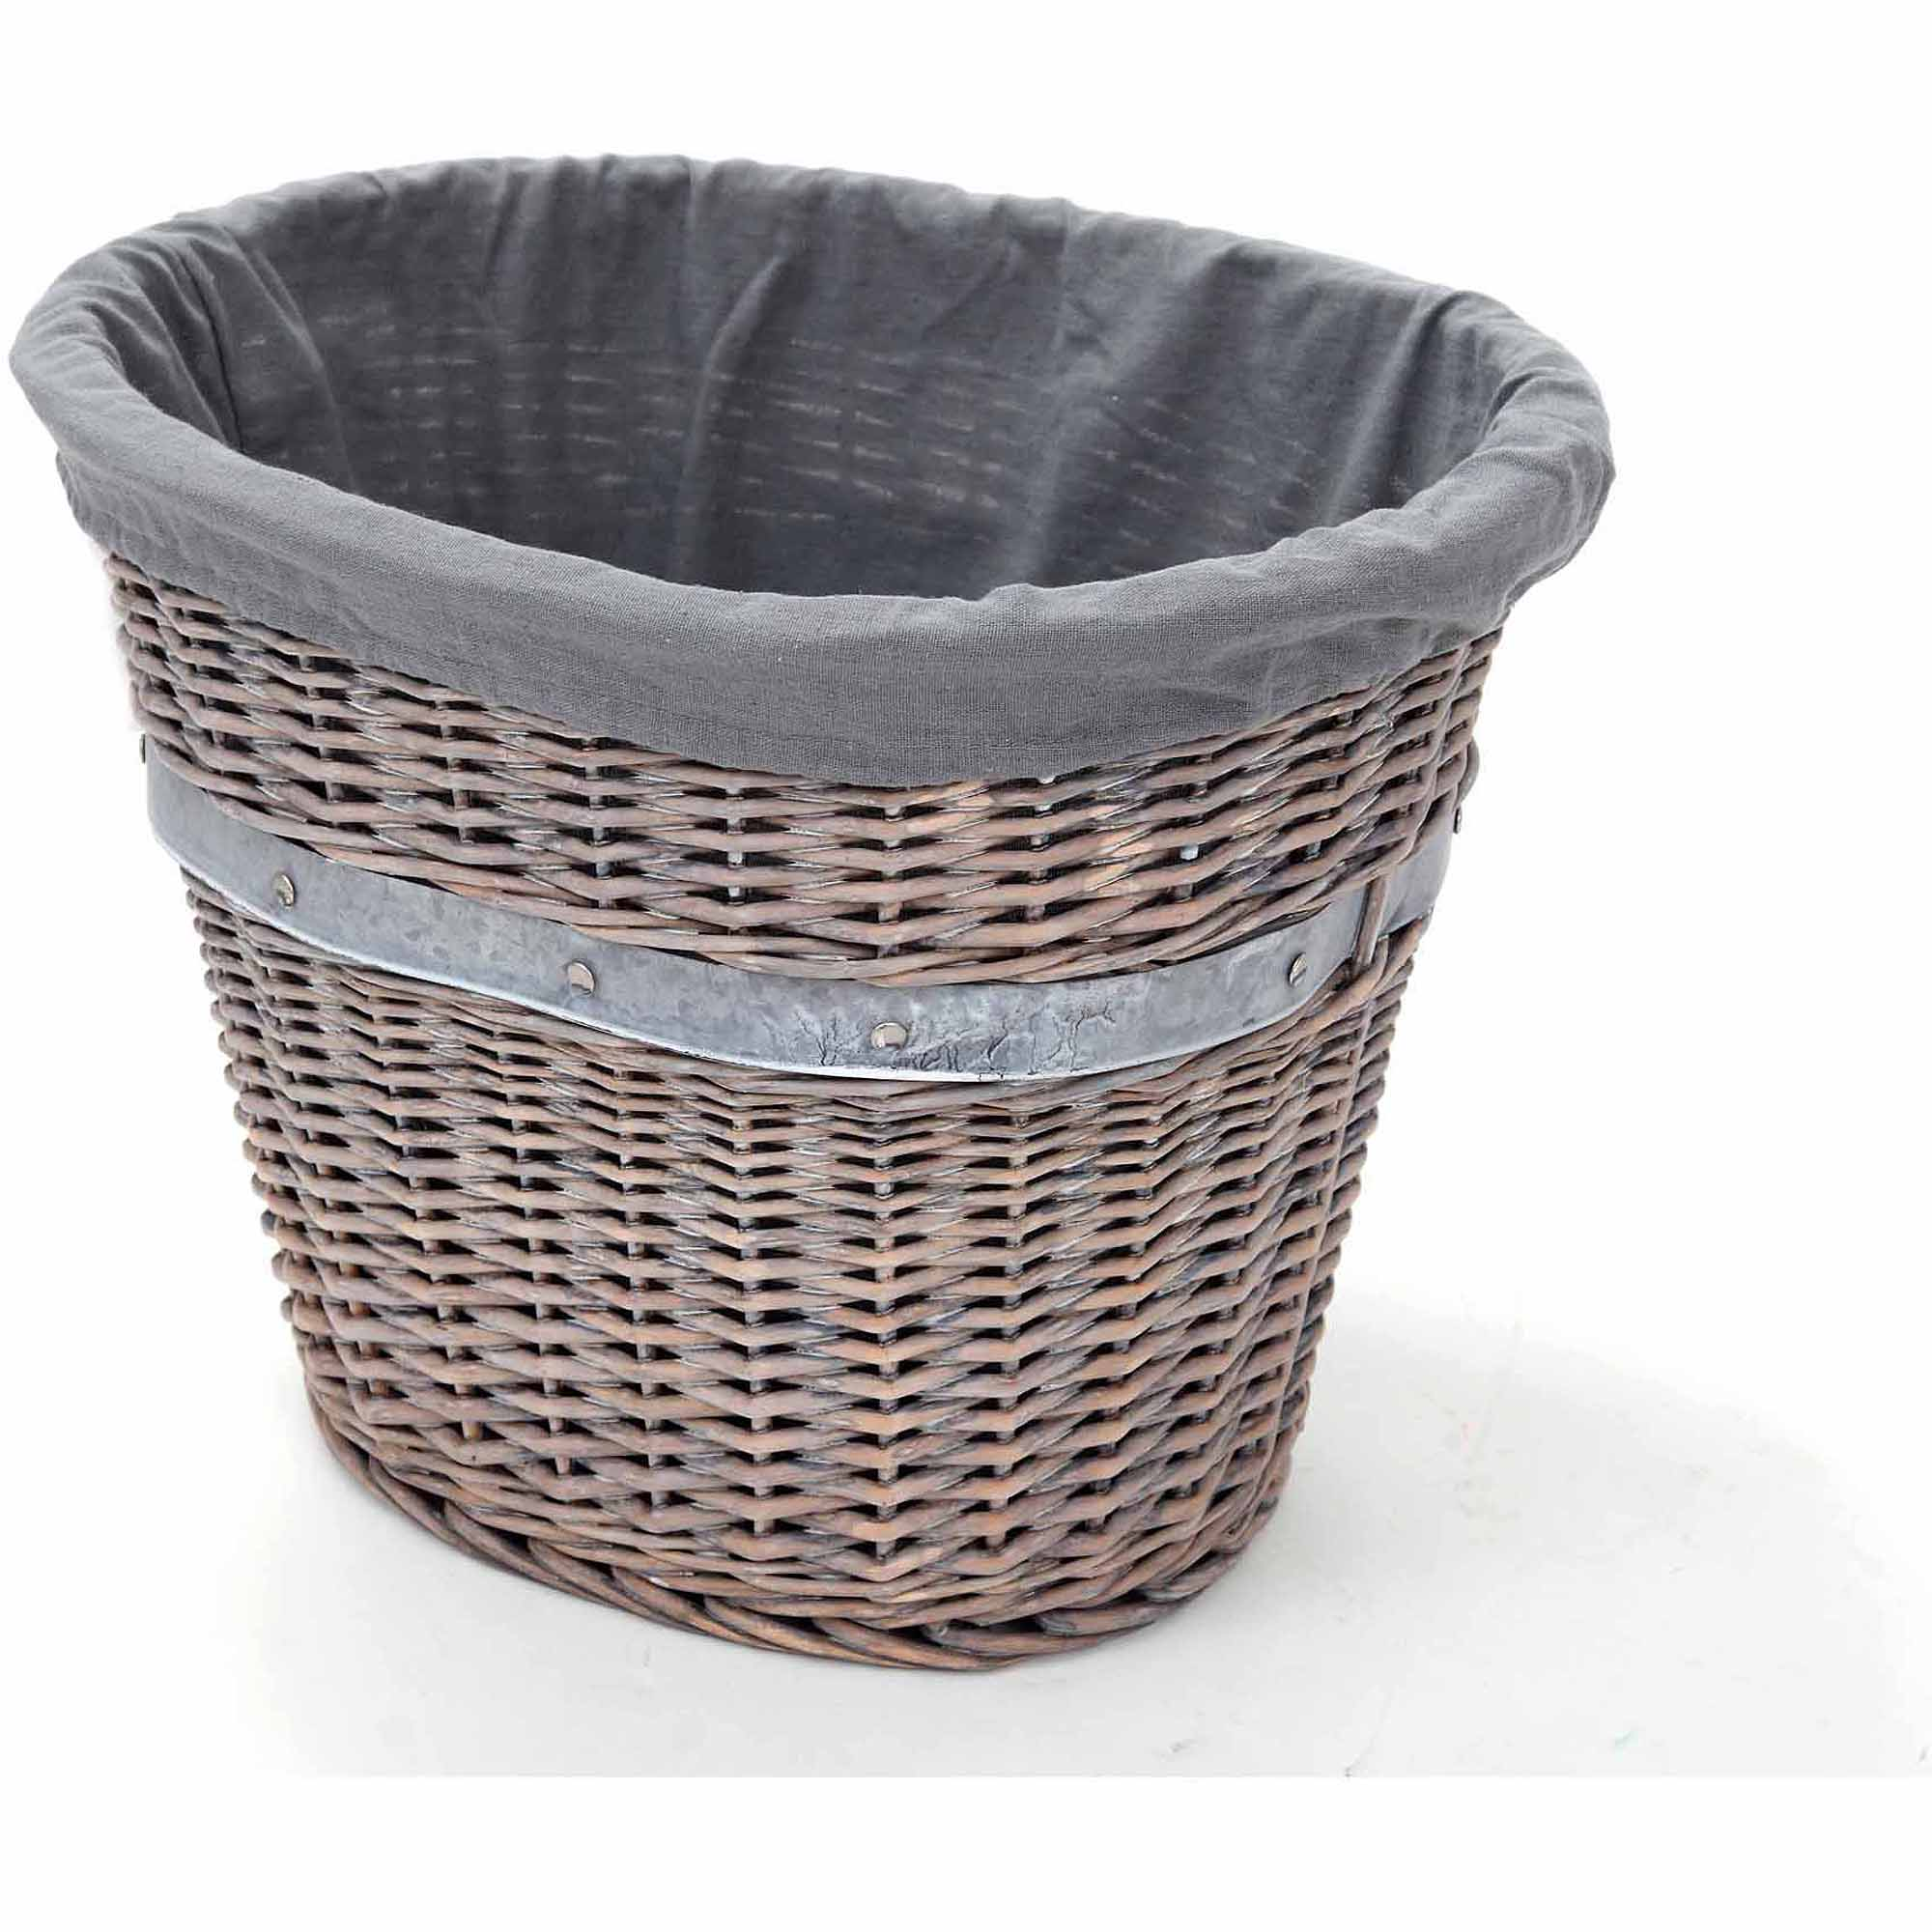 Better Homes and Gardens Large Willow Oval Basket, Grey